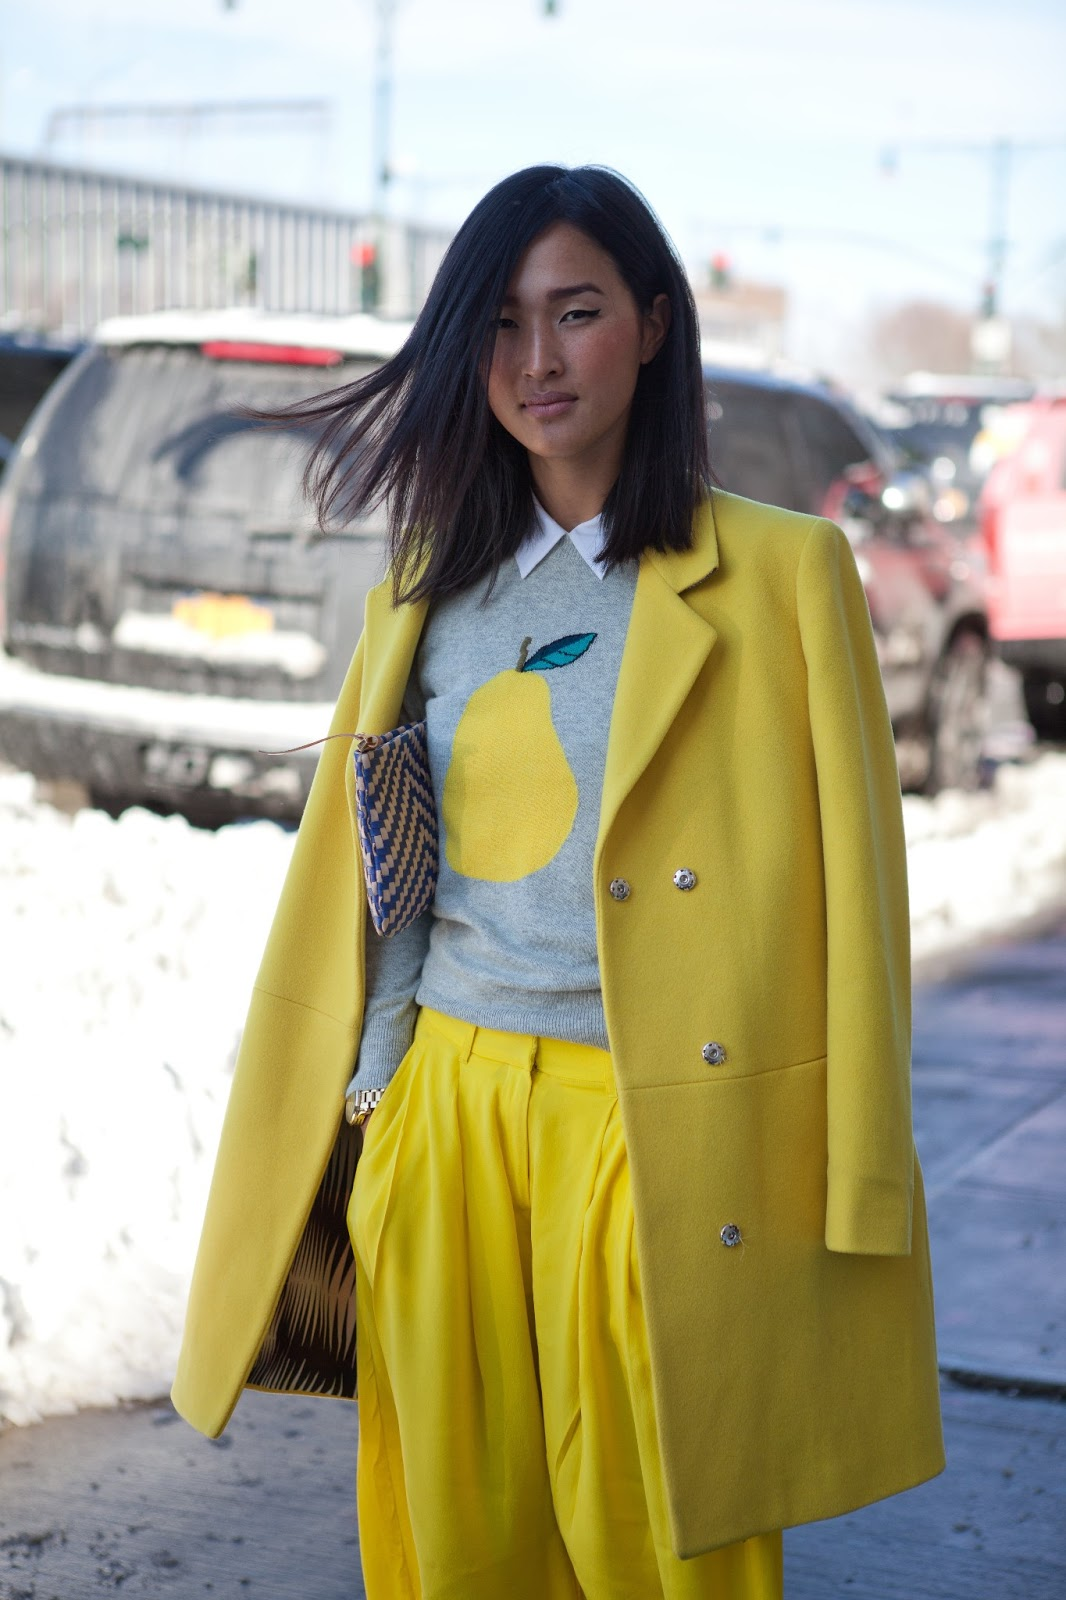 lemon-yellow-street style-coat-wide pant-printed sweater